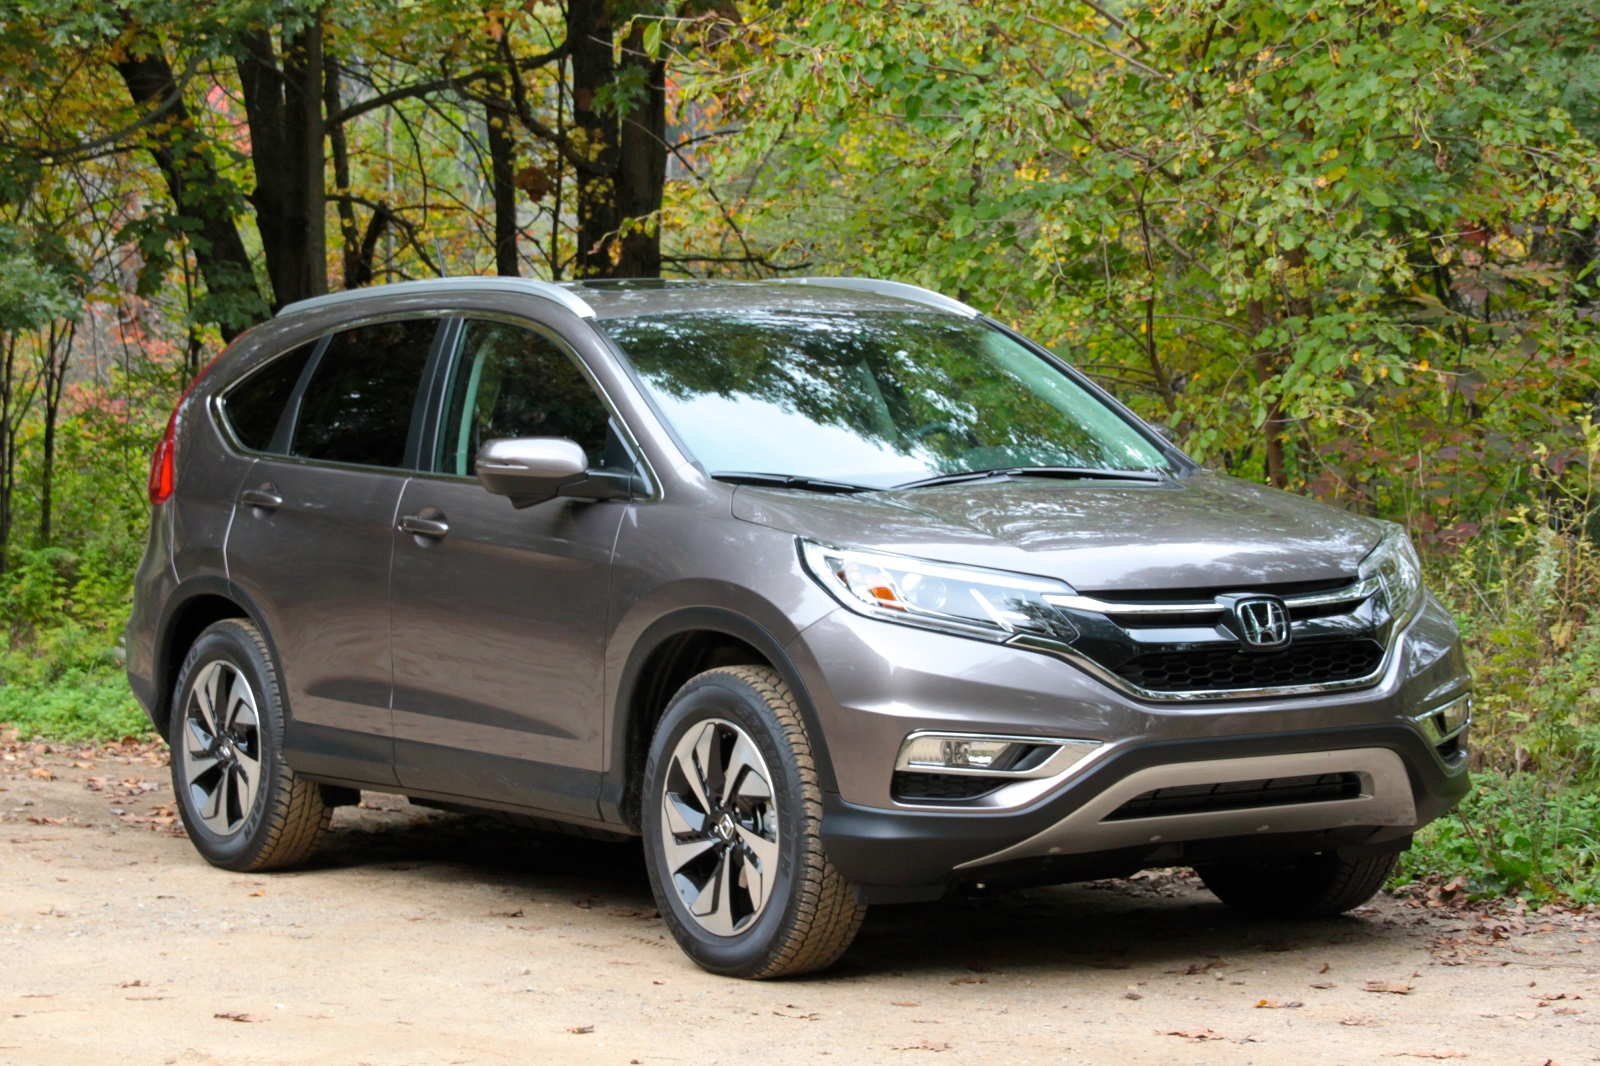 2015 Honda Cr V Gas Mileage Test Of Updated Crossover Suv